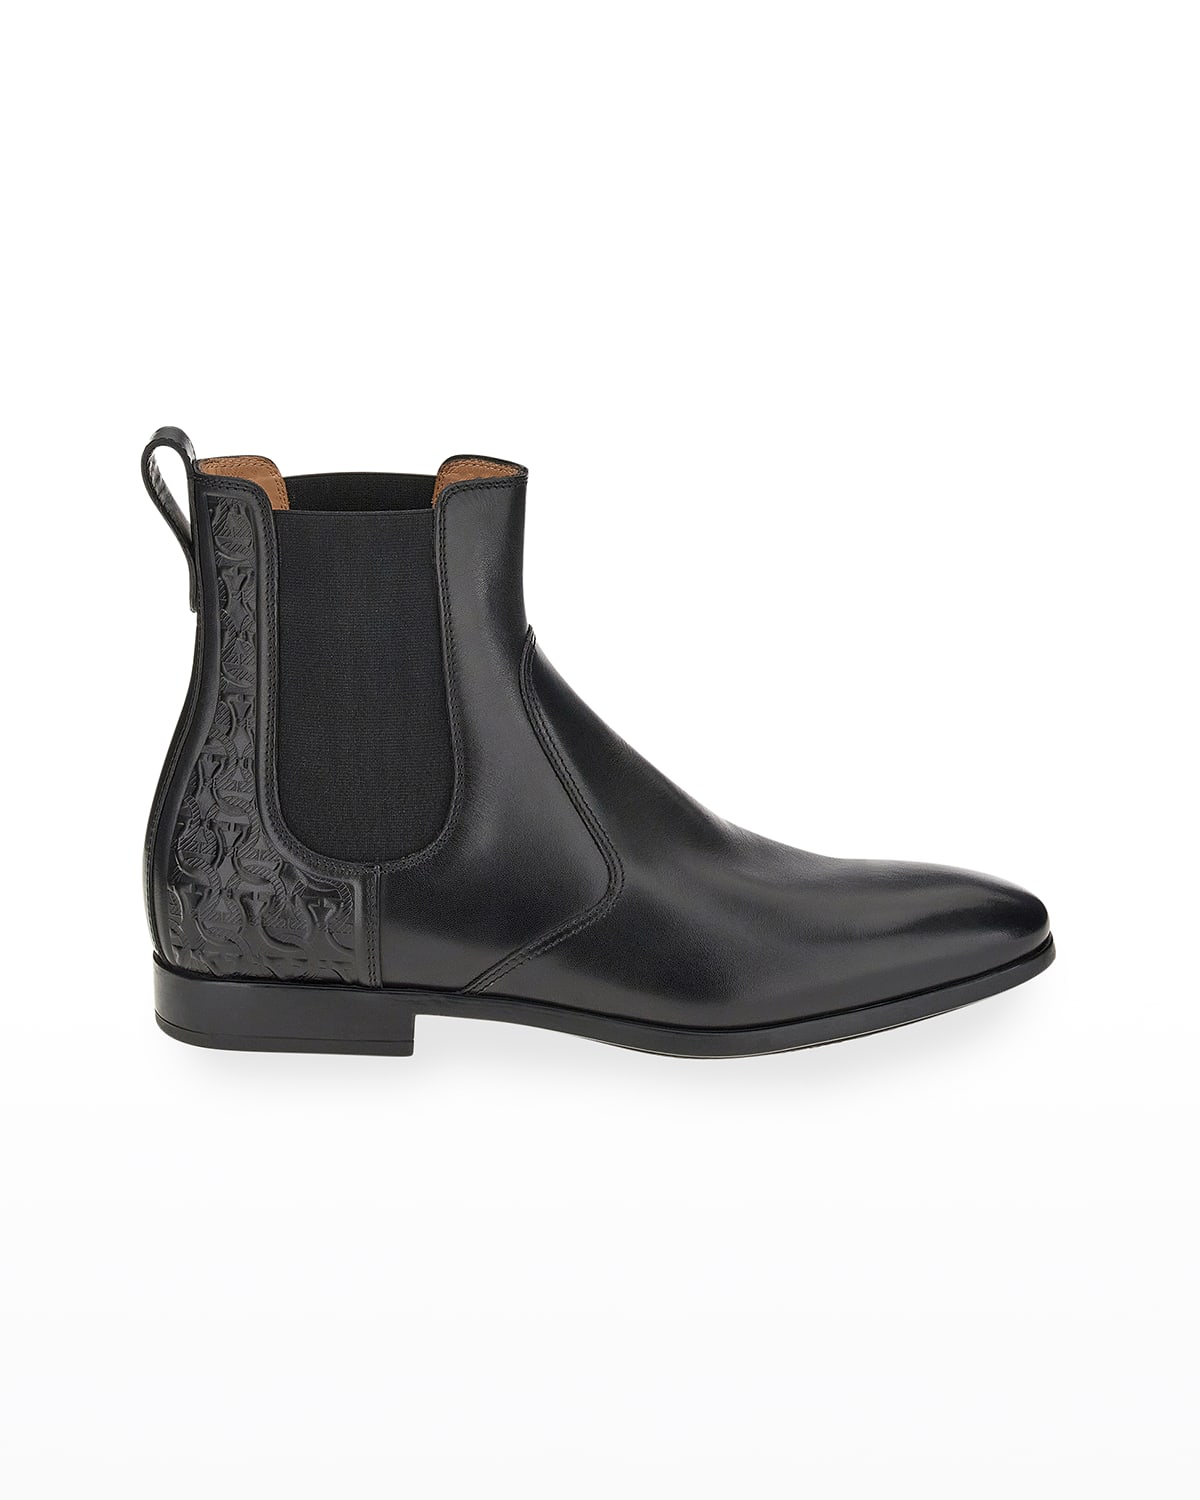 Men's Nathan Gancio Pointed Chelsea Boots